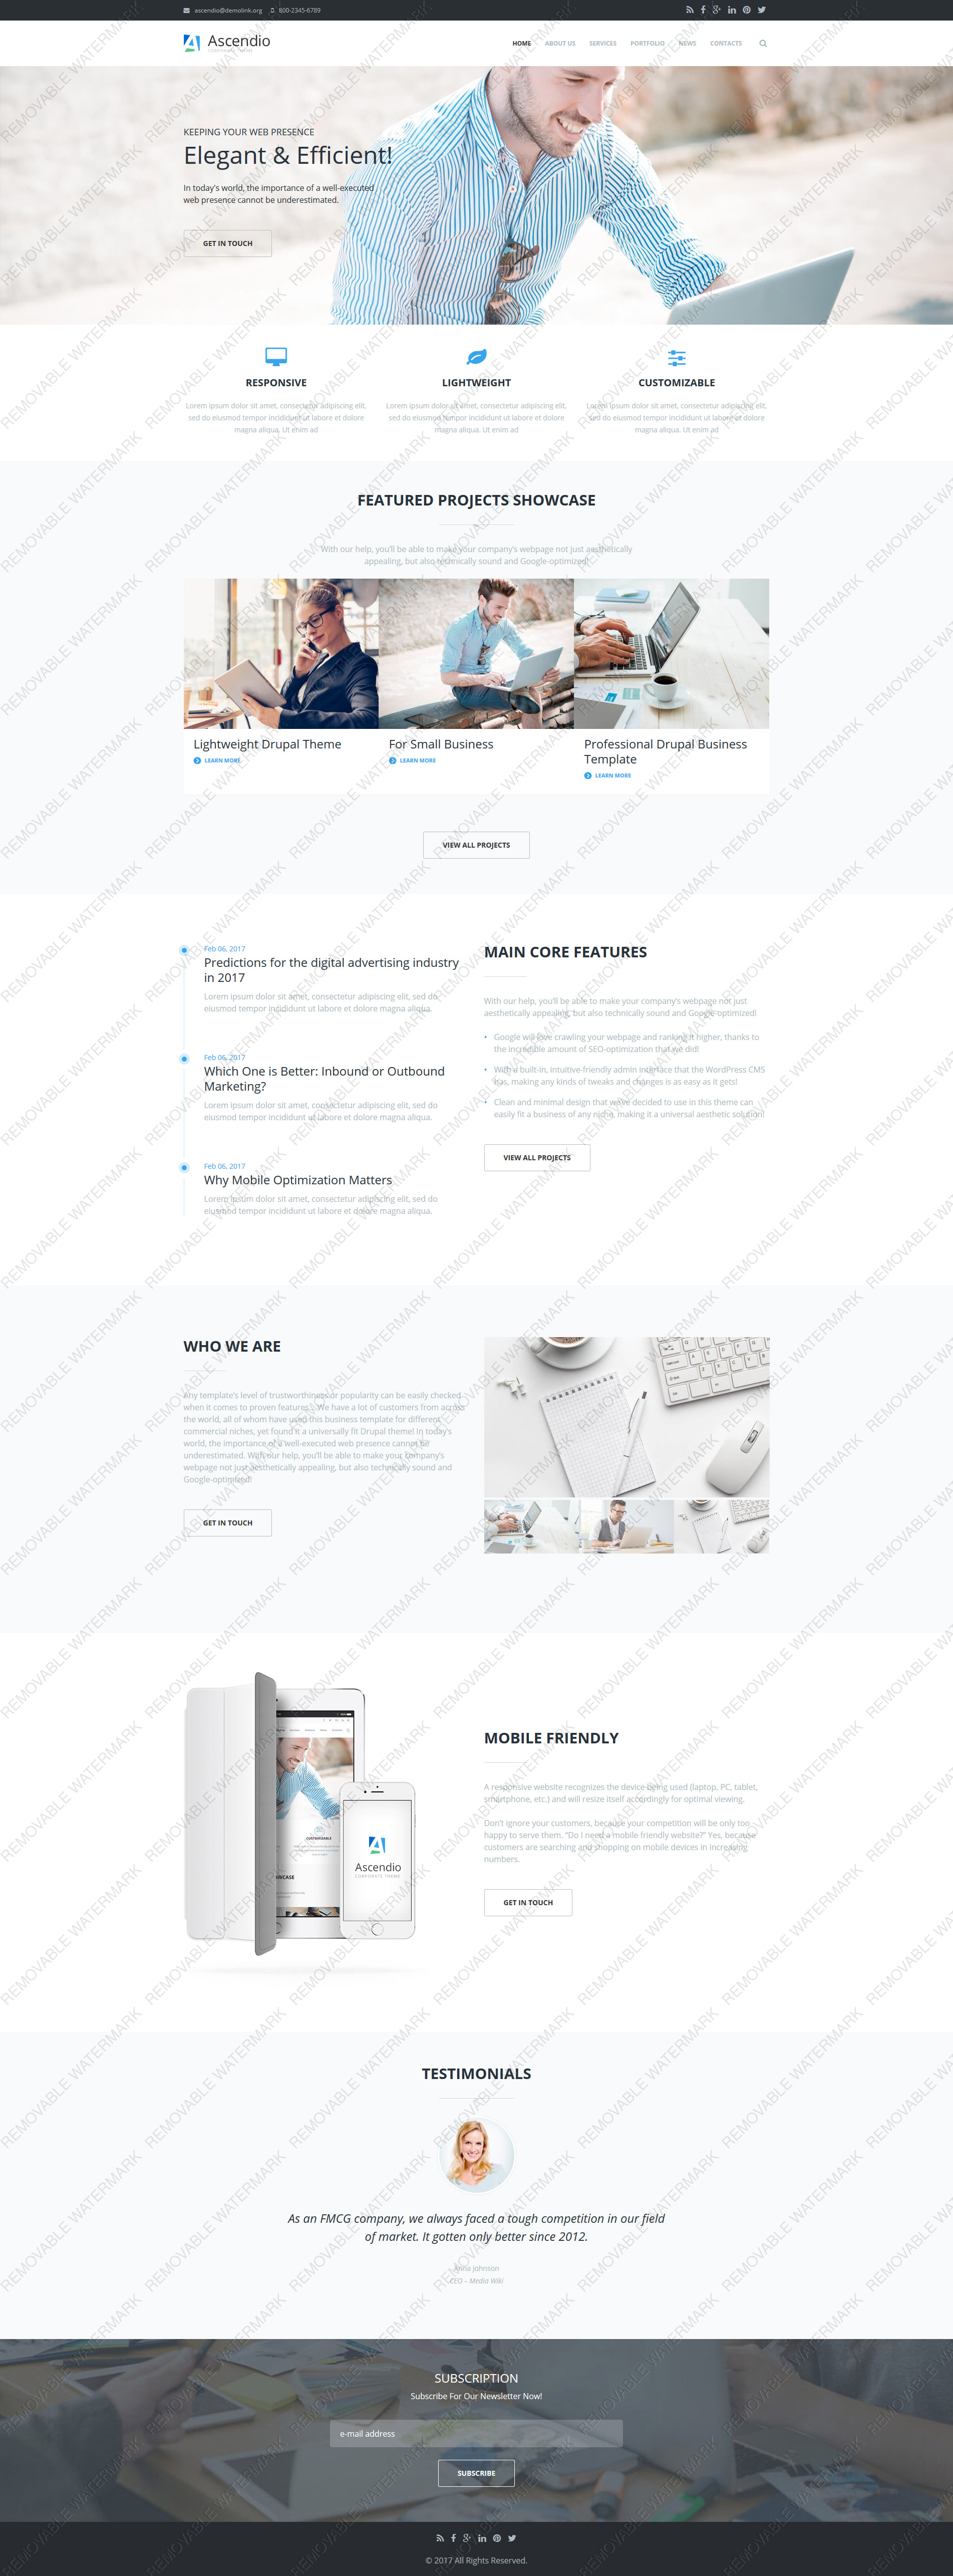 Custom Website Design Template #62376 -  ascendio theme corporate drupal business modern